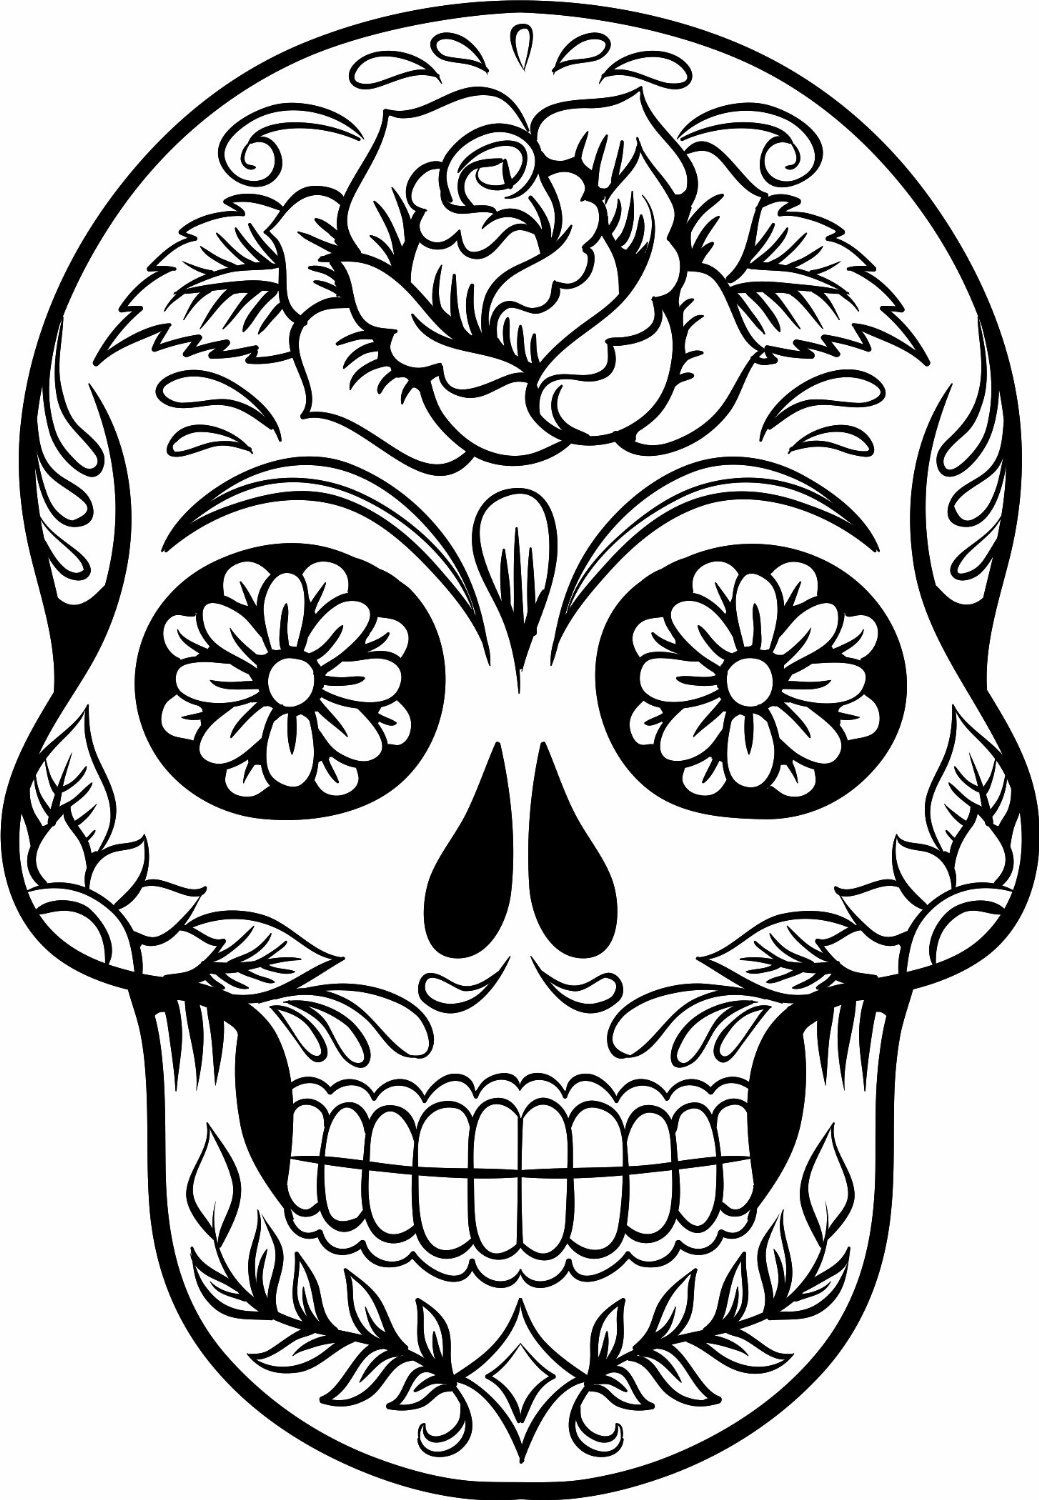 sugar skull - Buscar con Google | west | Pinterest | Google, Sugar ...